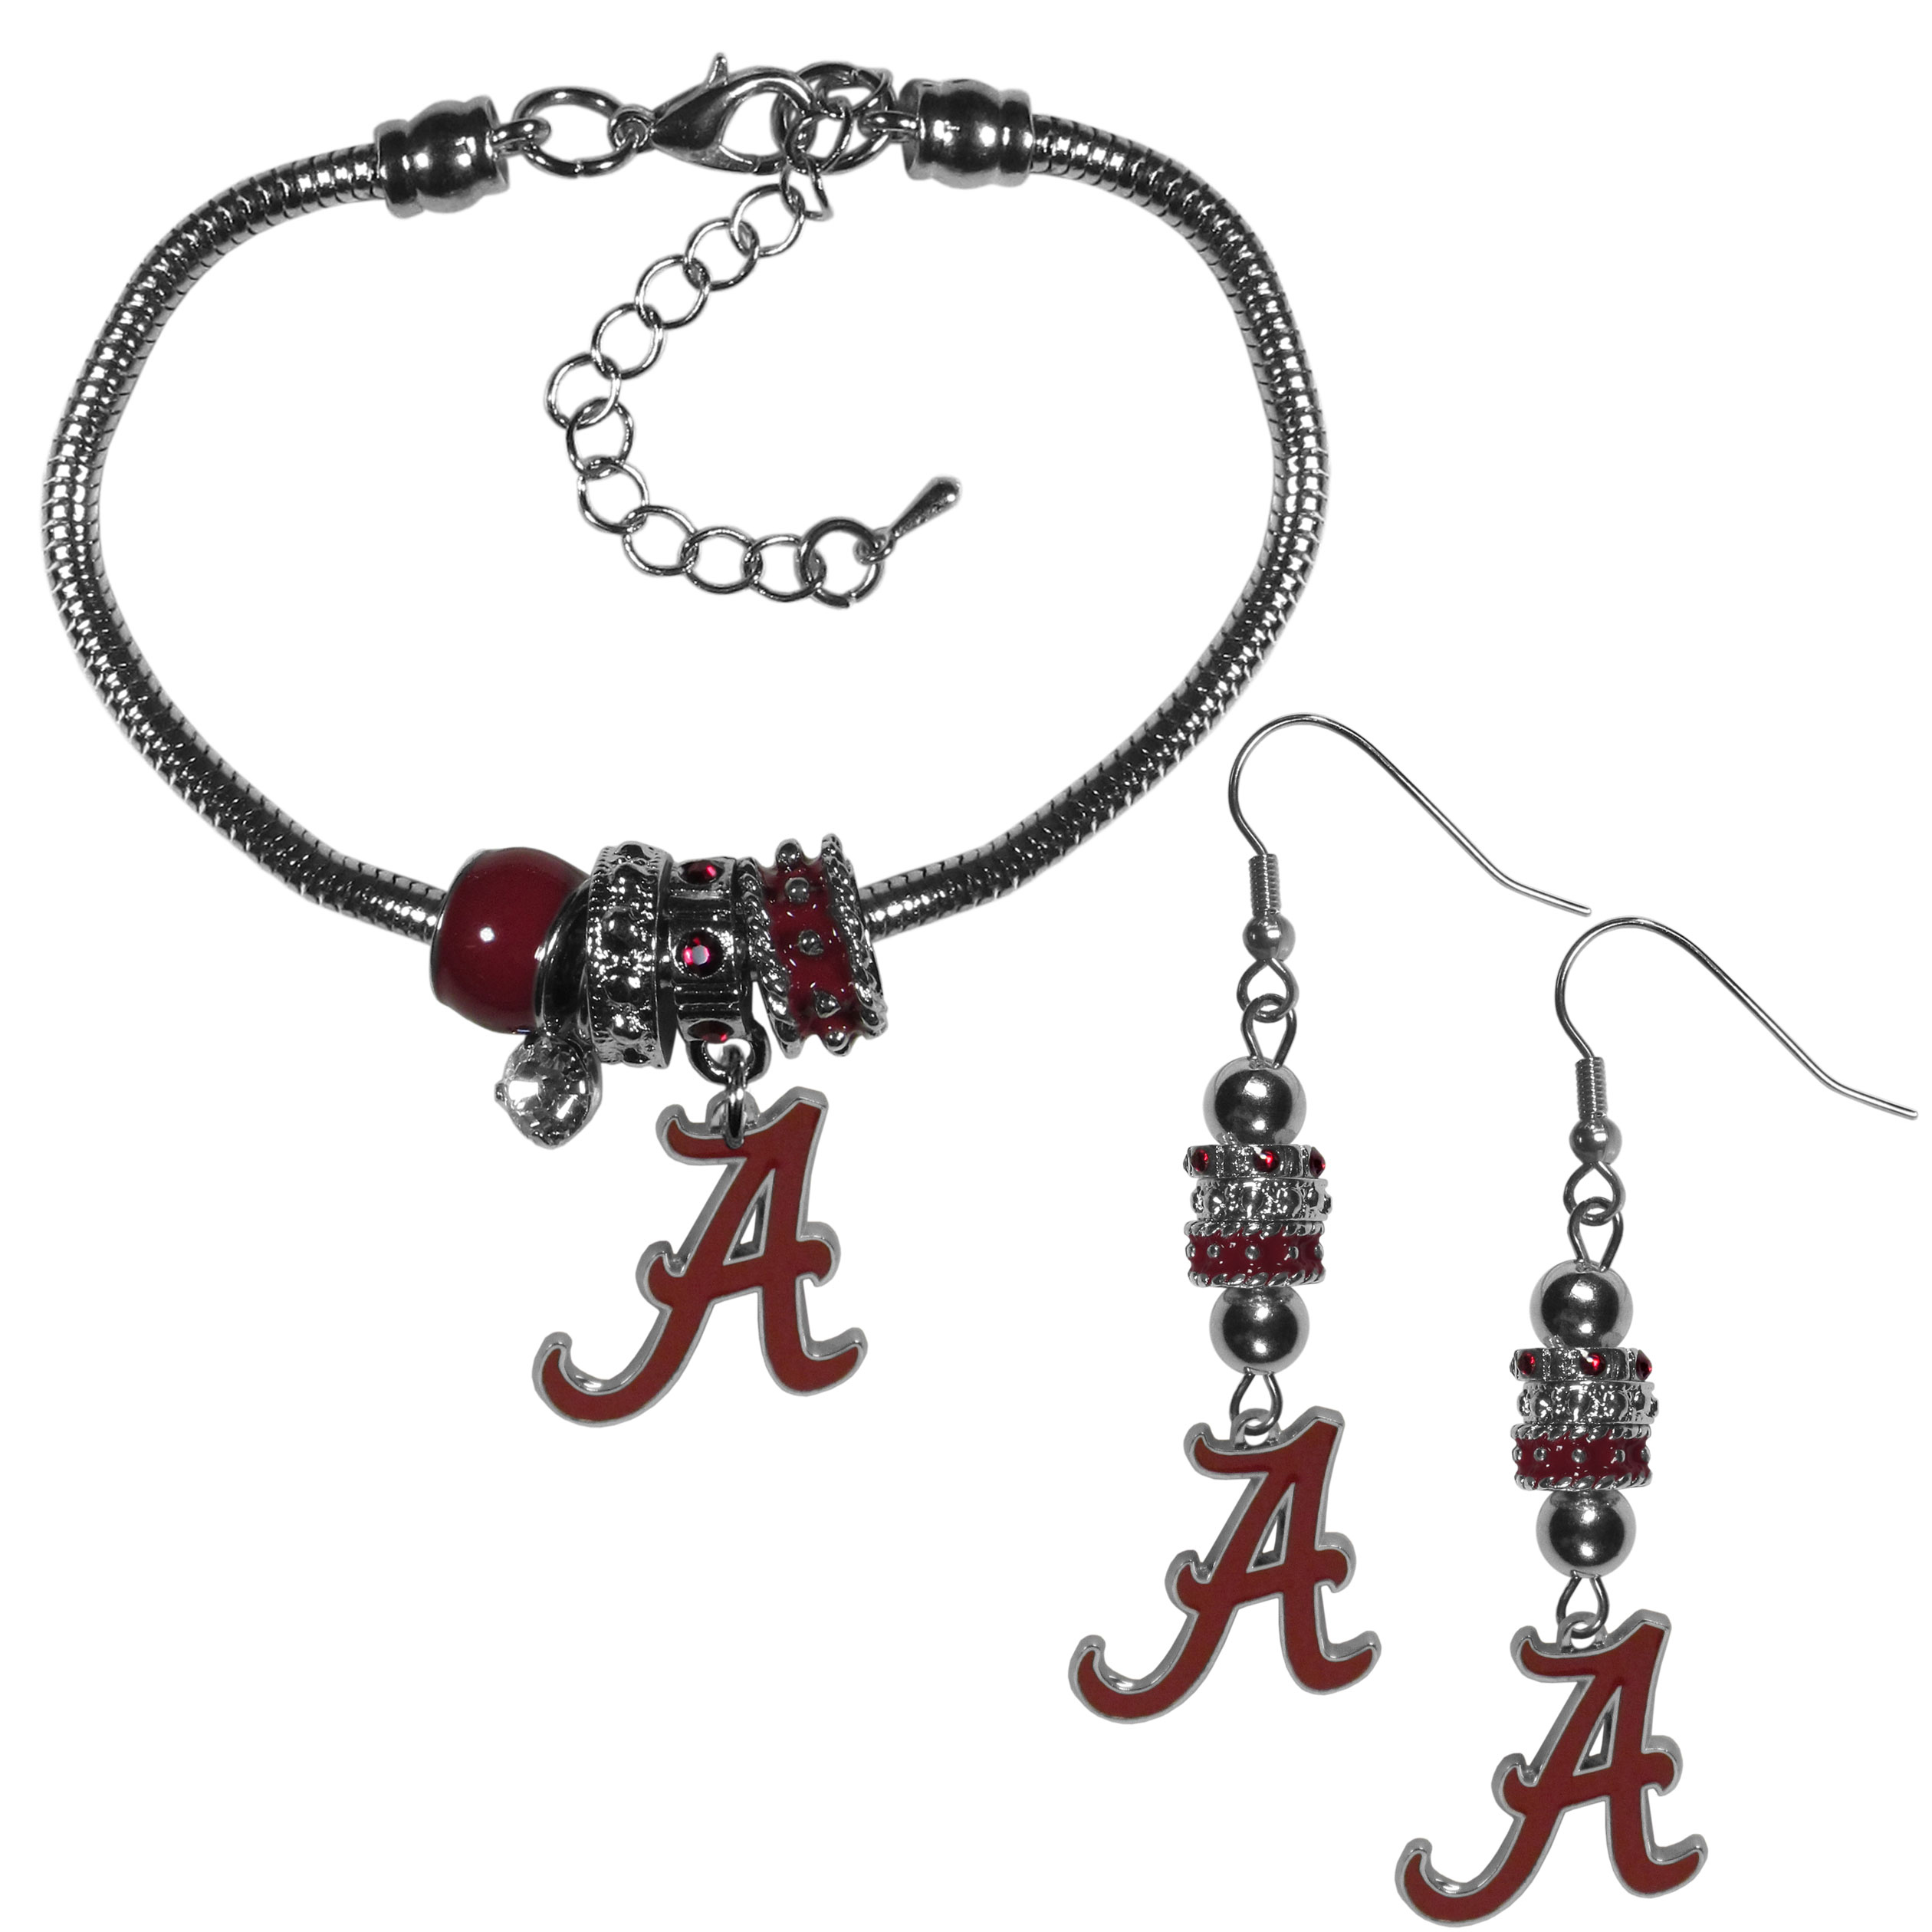 Alabama Crimson Tide Euro Bead Earrings and Bracelet Set - We combine the popular Euro bead style with your love of the Alabama Crimson Tide with this beautiful jewelry set that includes earrings and a matching bracelet. The stylish earrings feature hypoallergenic, nickel free fishhook posts and 3 team colored Euro beads and a metal team charm. The matching snake chain bracelet is 7.5 inches long with a 2 inch extender and 4 Euro beads with a rhinestone charm and team charm.